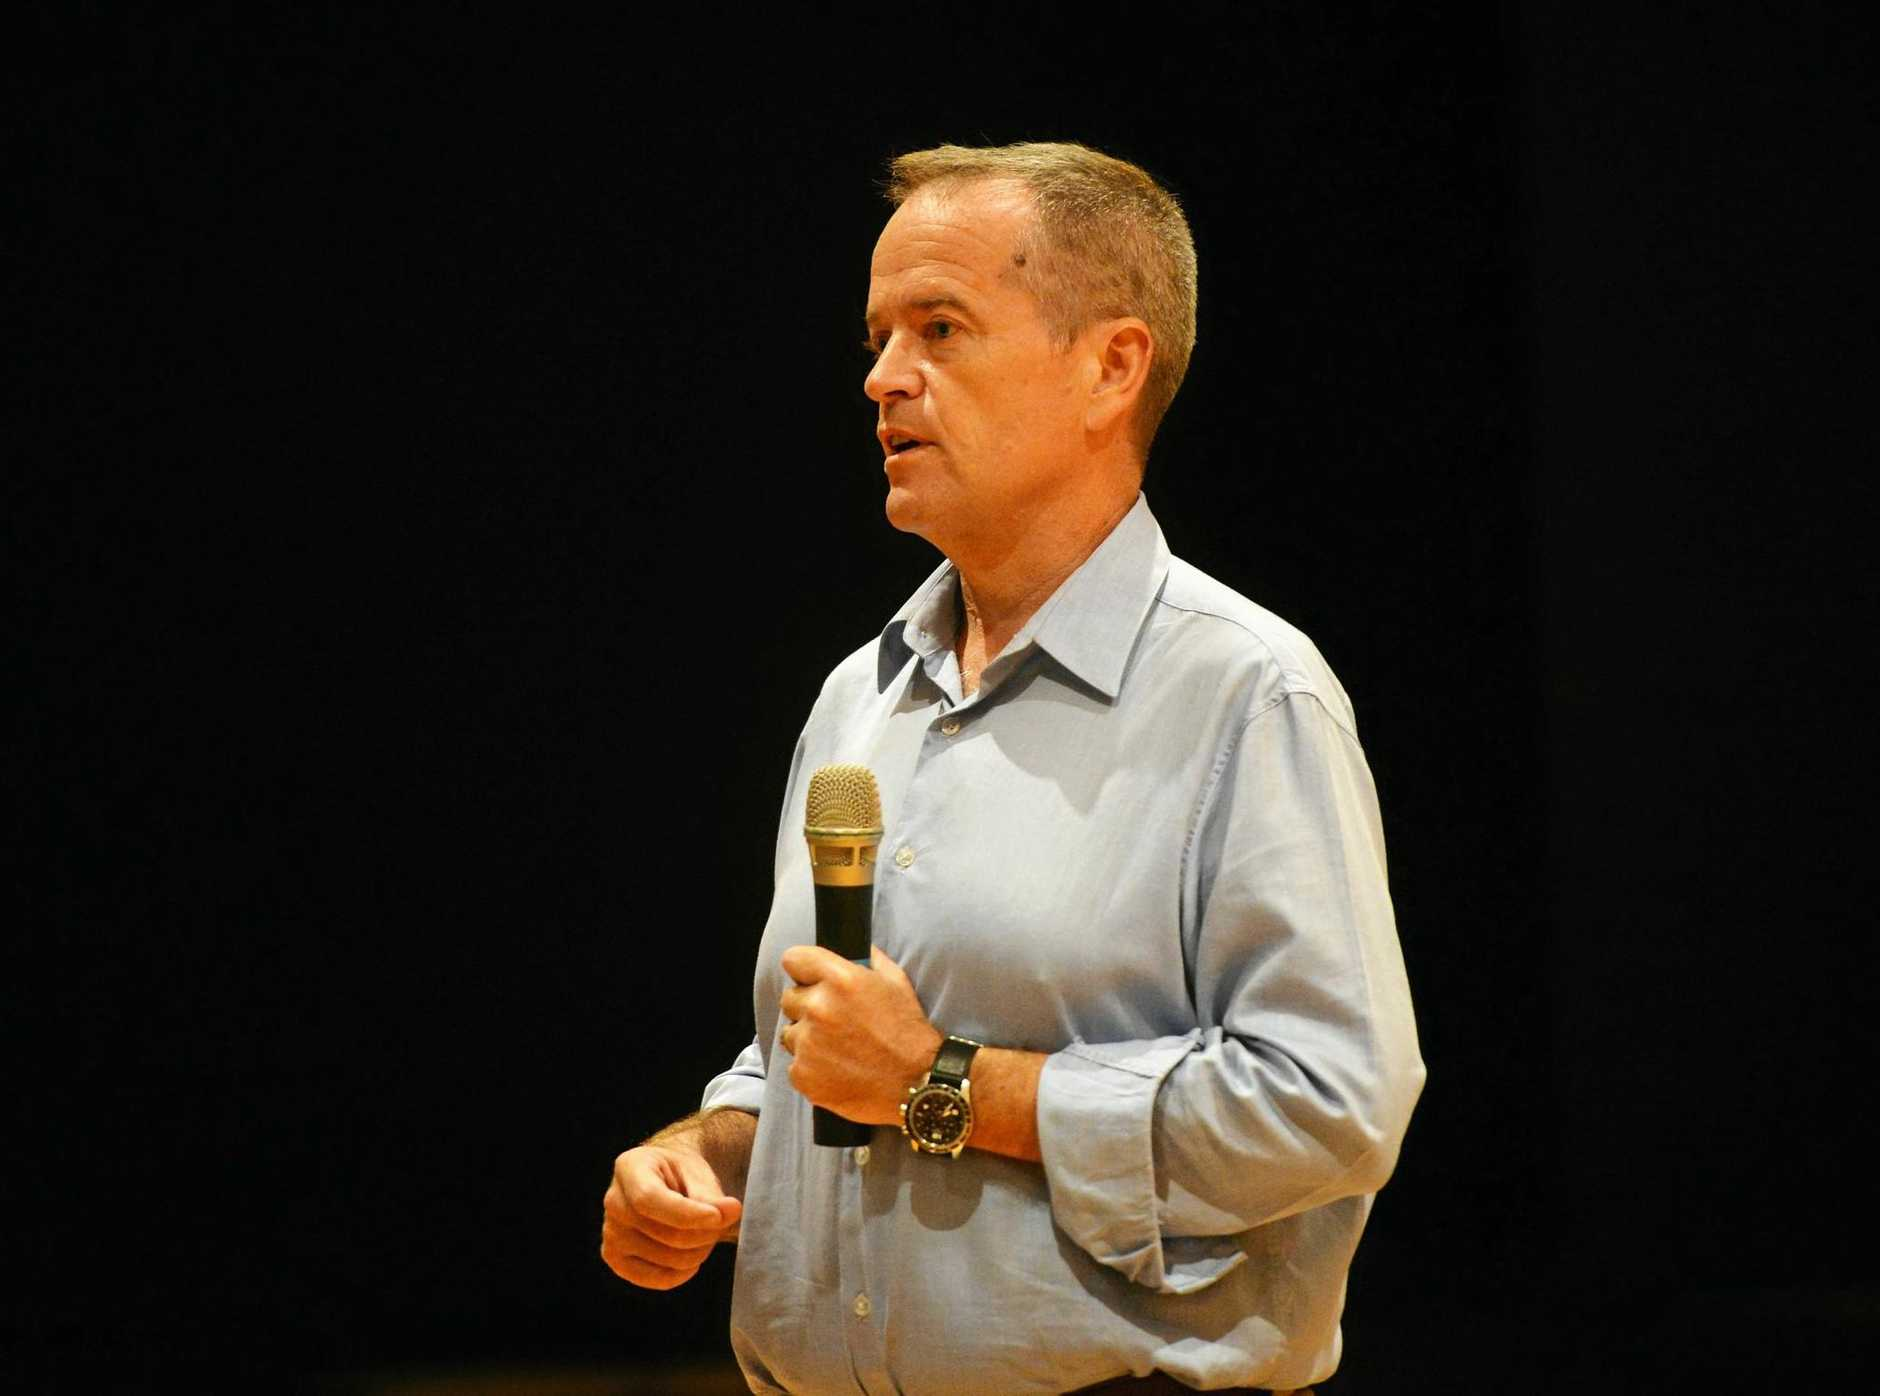 ROCKHAMPTON VISIT: Opposition Leader Bill Shorten defends his stance on Adani.